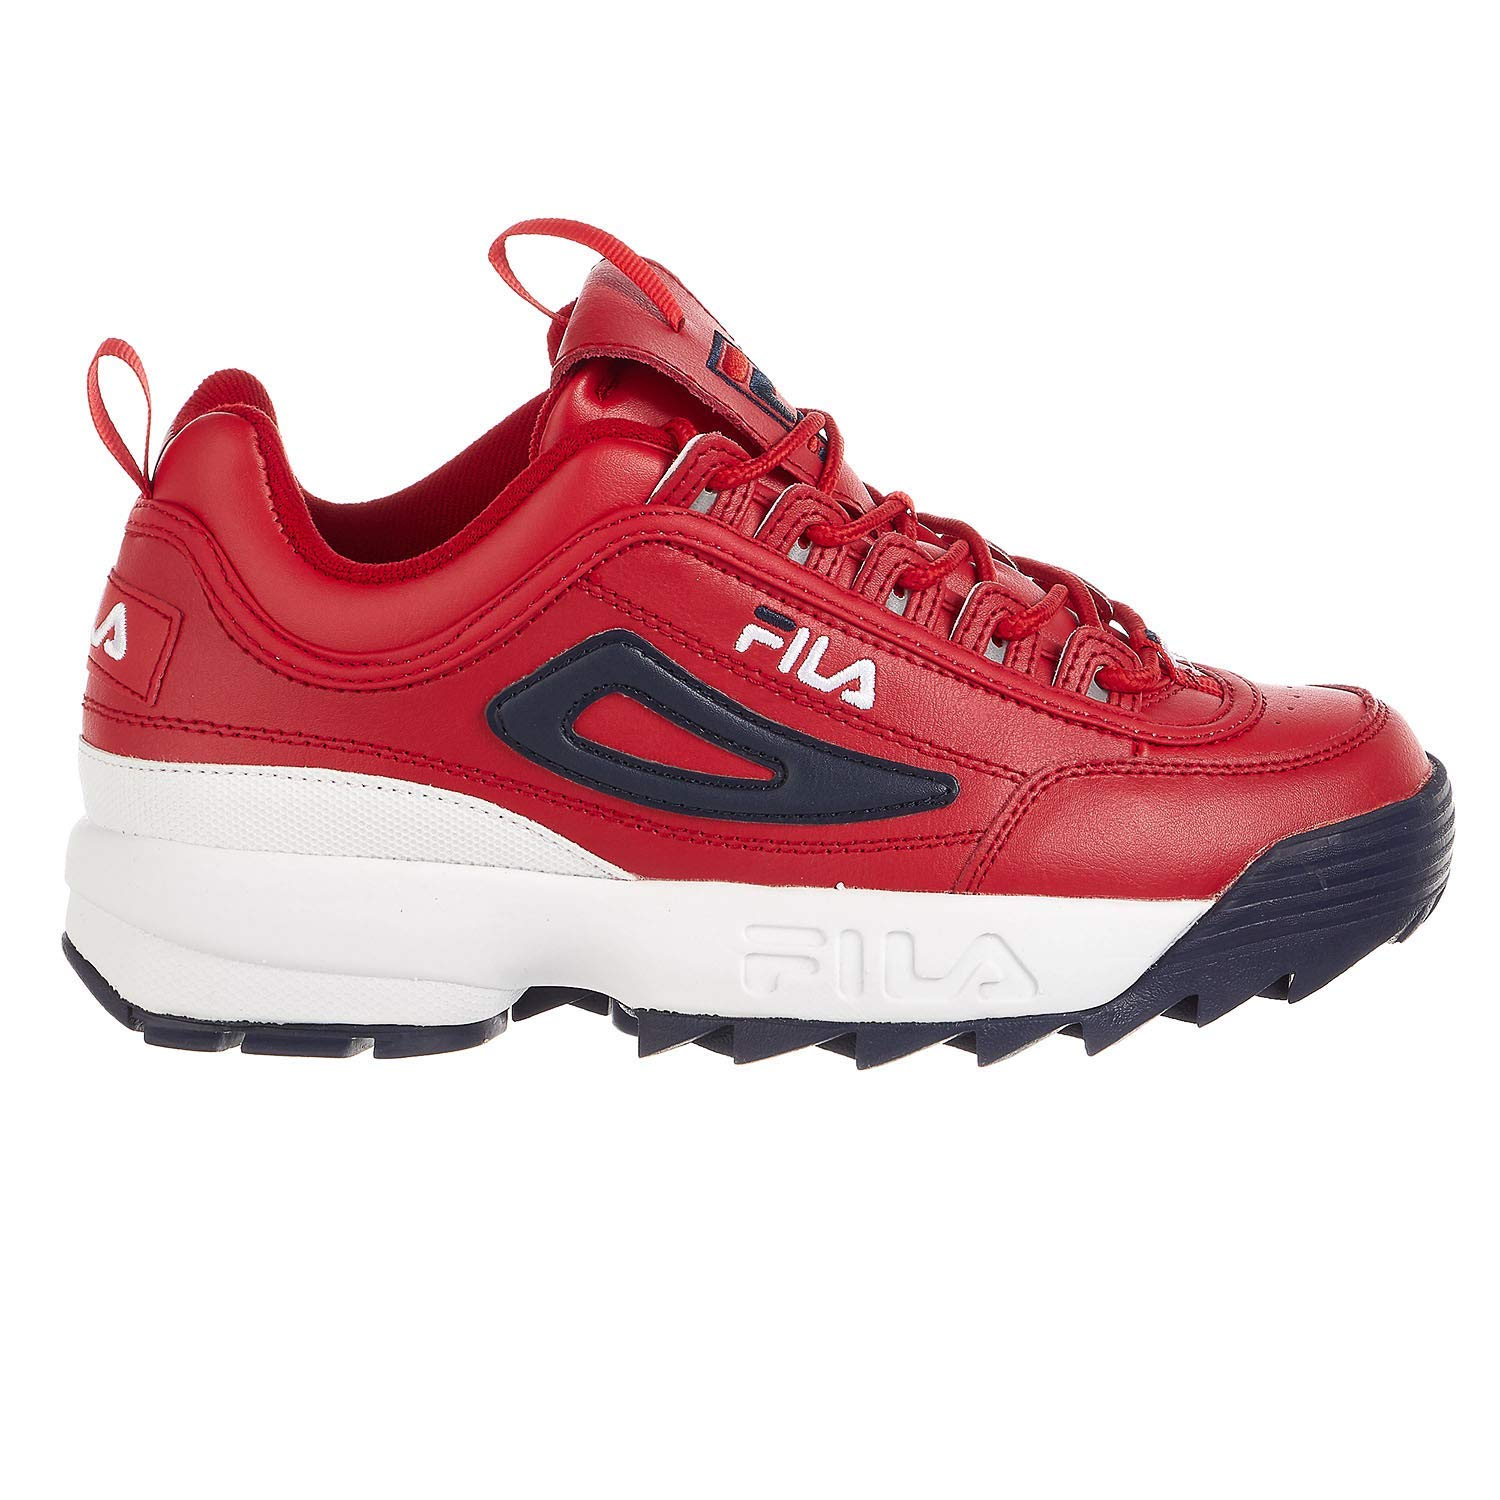 Amazon.com | Fila 1FM00139-616: Men's Disruptor ll Premium ...